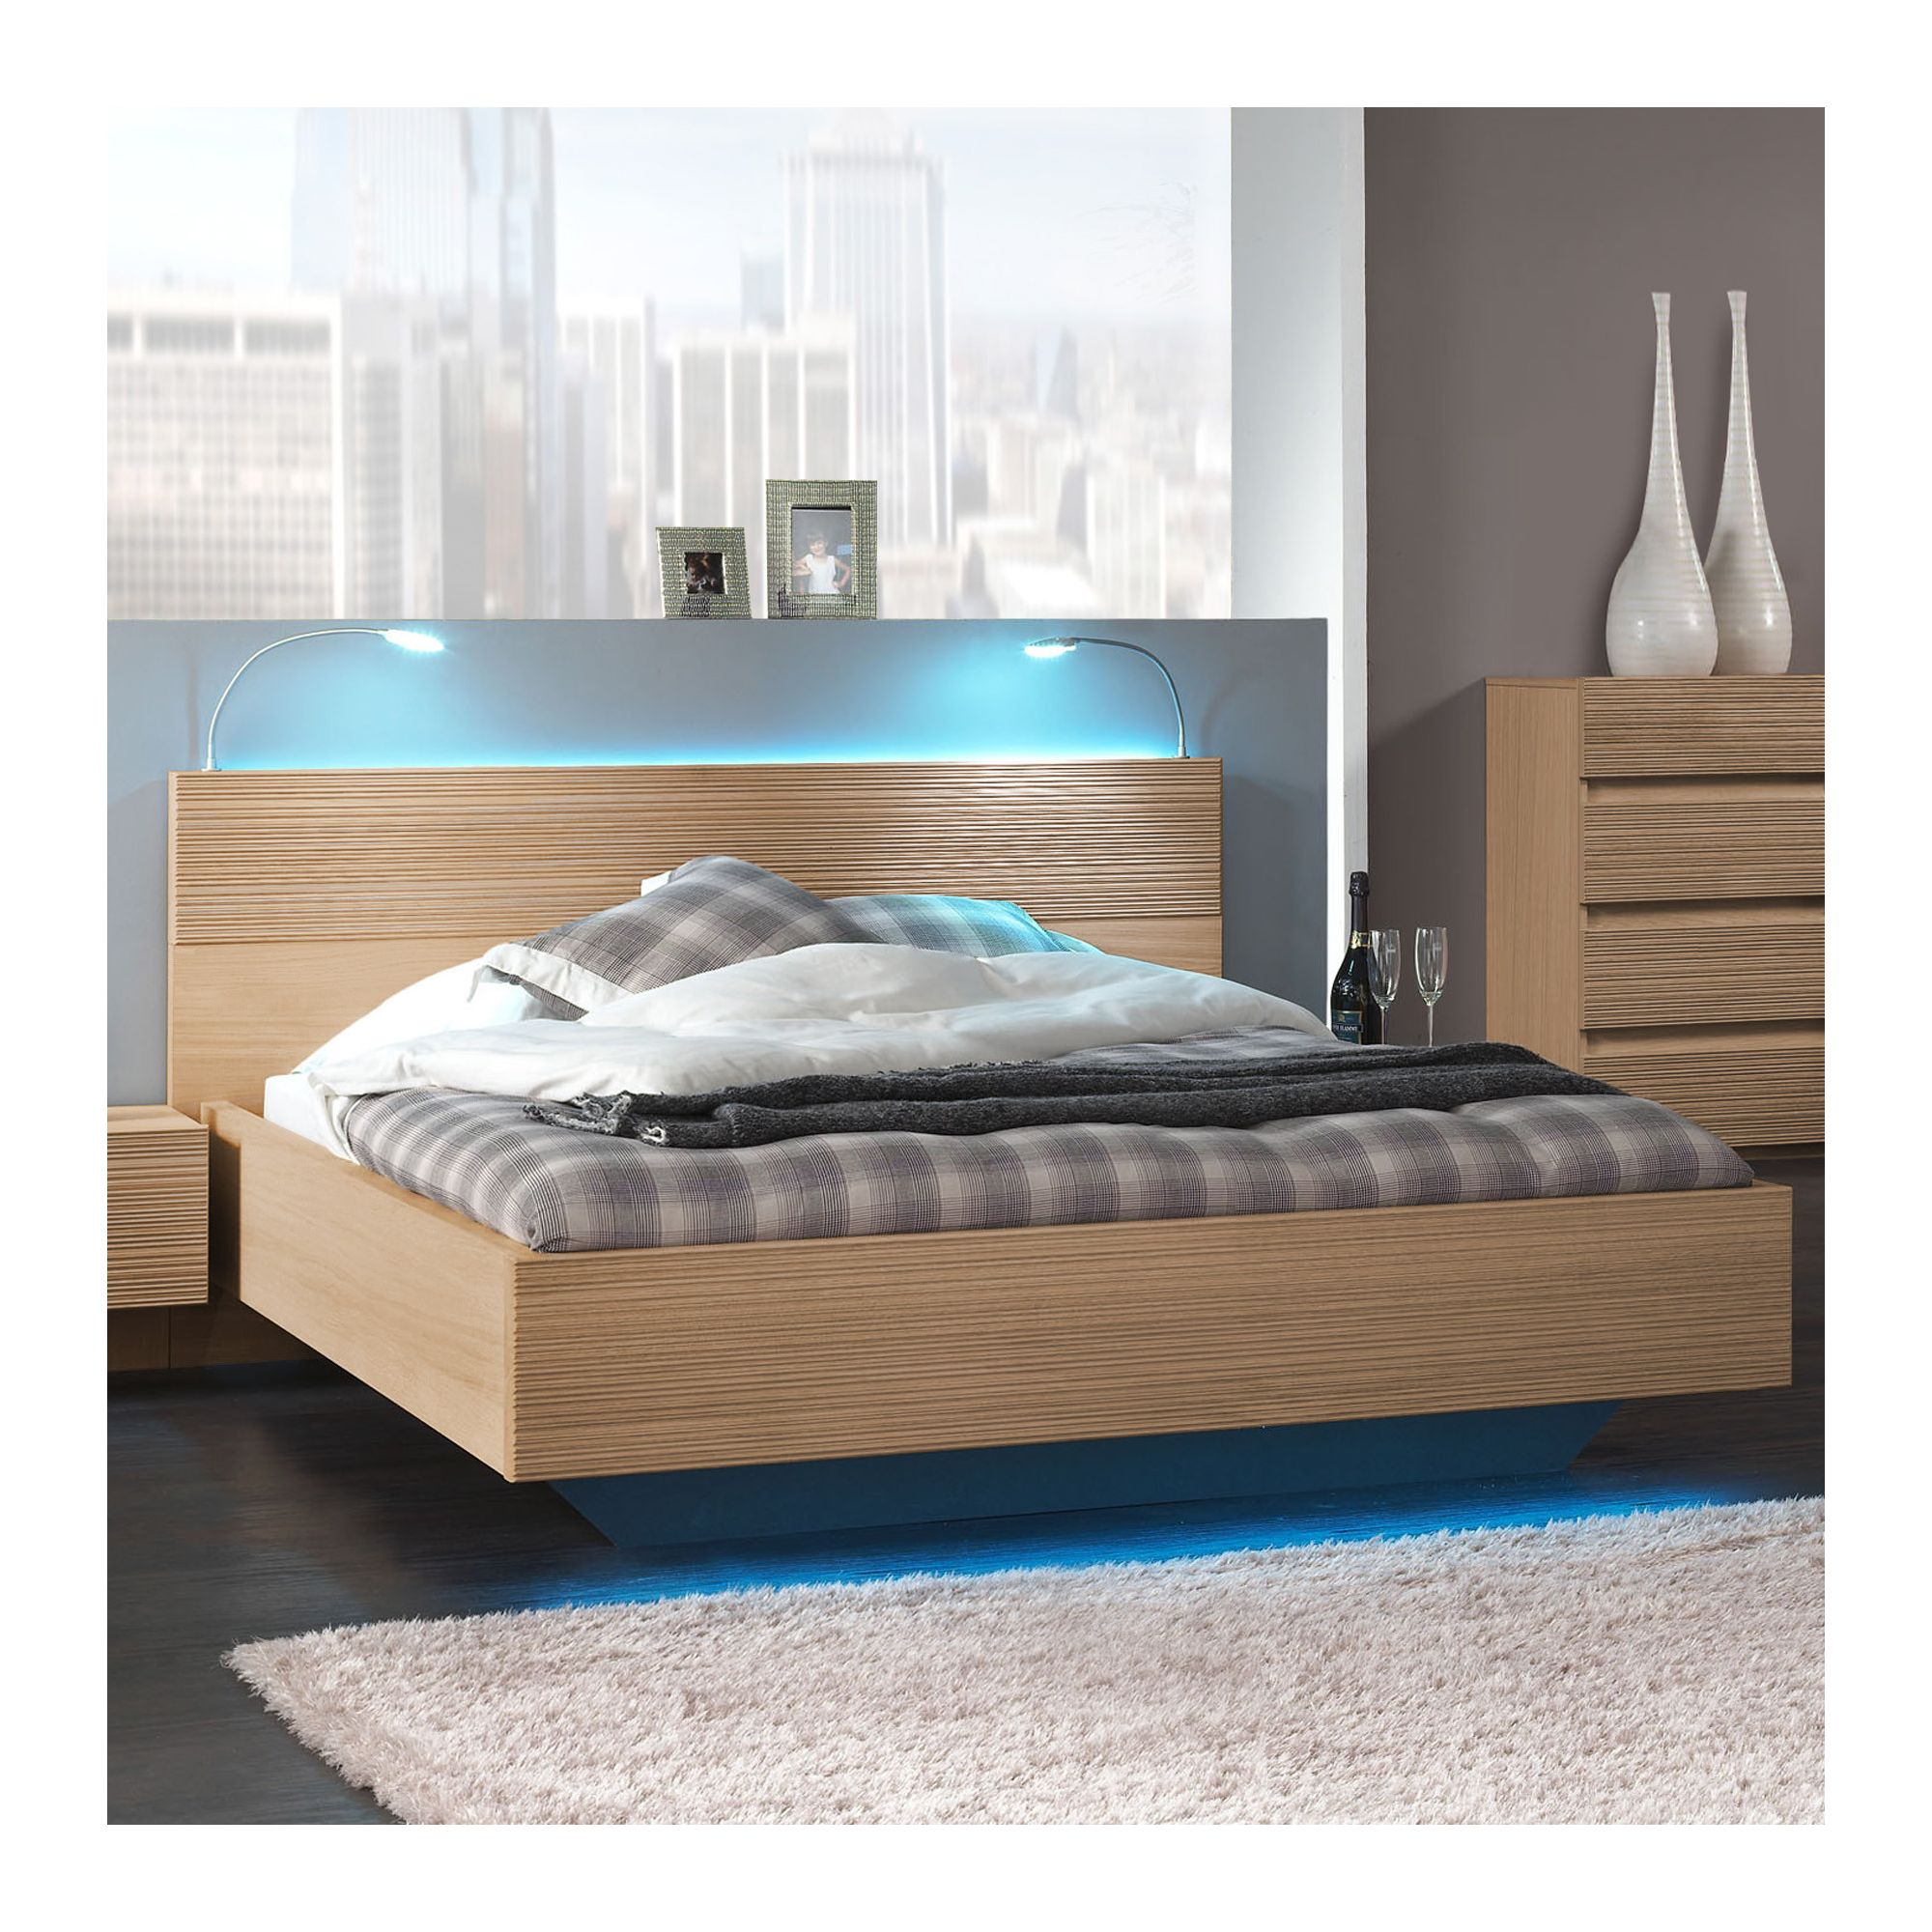 Sleepline Diva Bed - Grey Mat Lacquered - European King at Tesco Direct